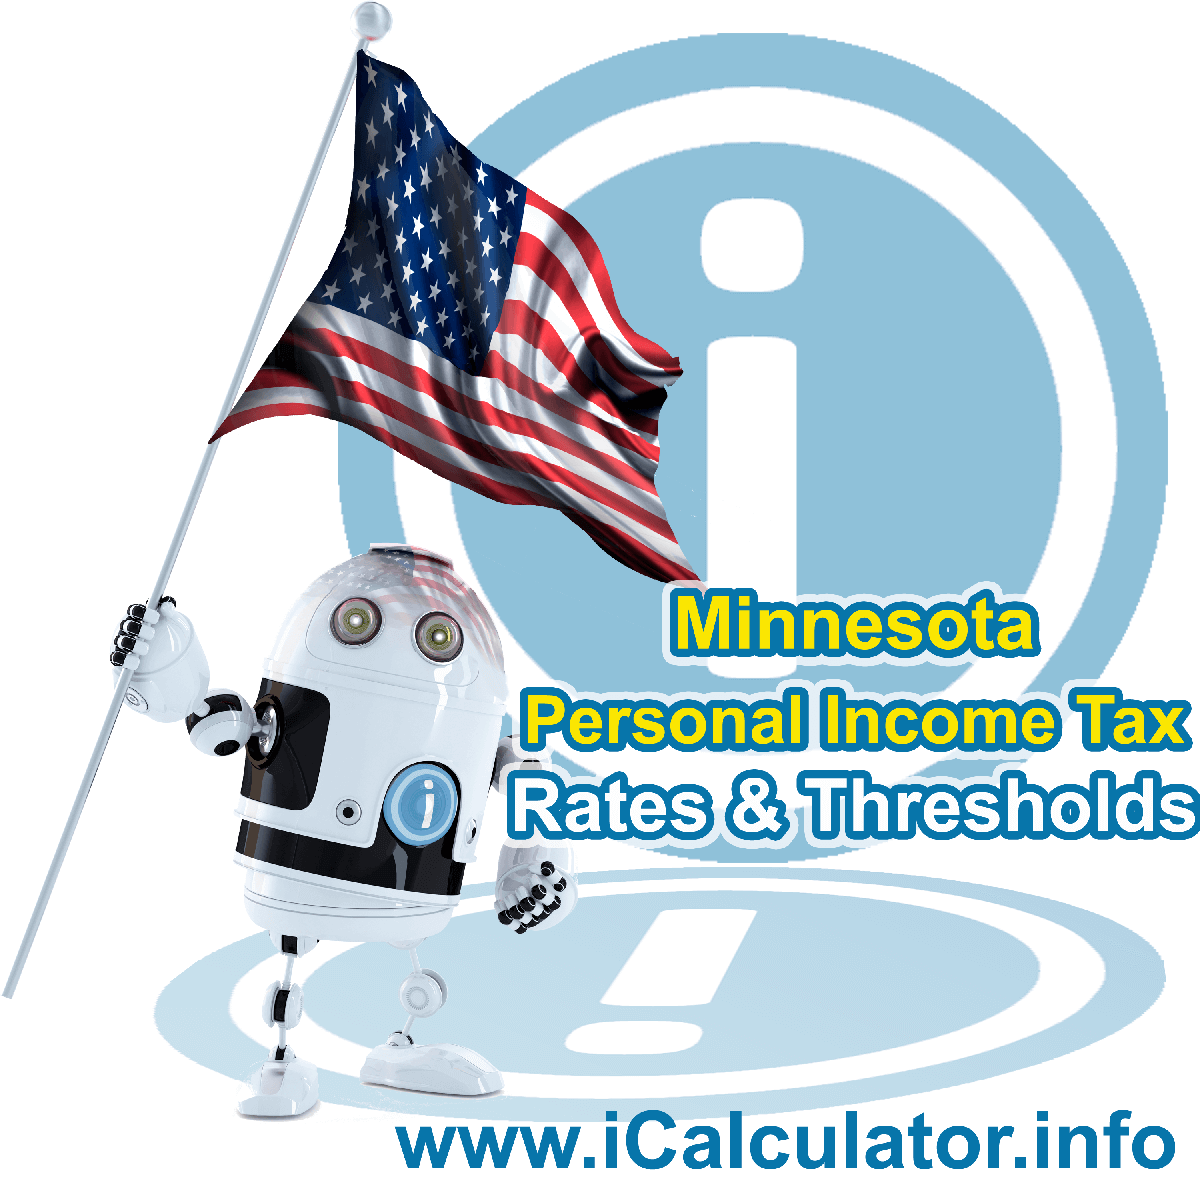 Minnesota State Tax Tables 2018. This image displays details of the Minnesota State Tax Tables for the 2018 tax return year which is provided in support of the 2018 US Tax Calculator